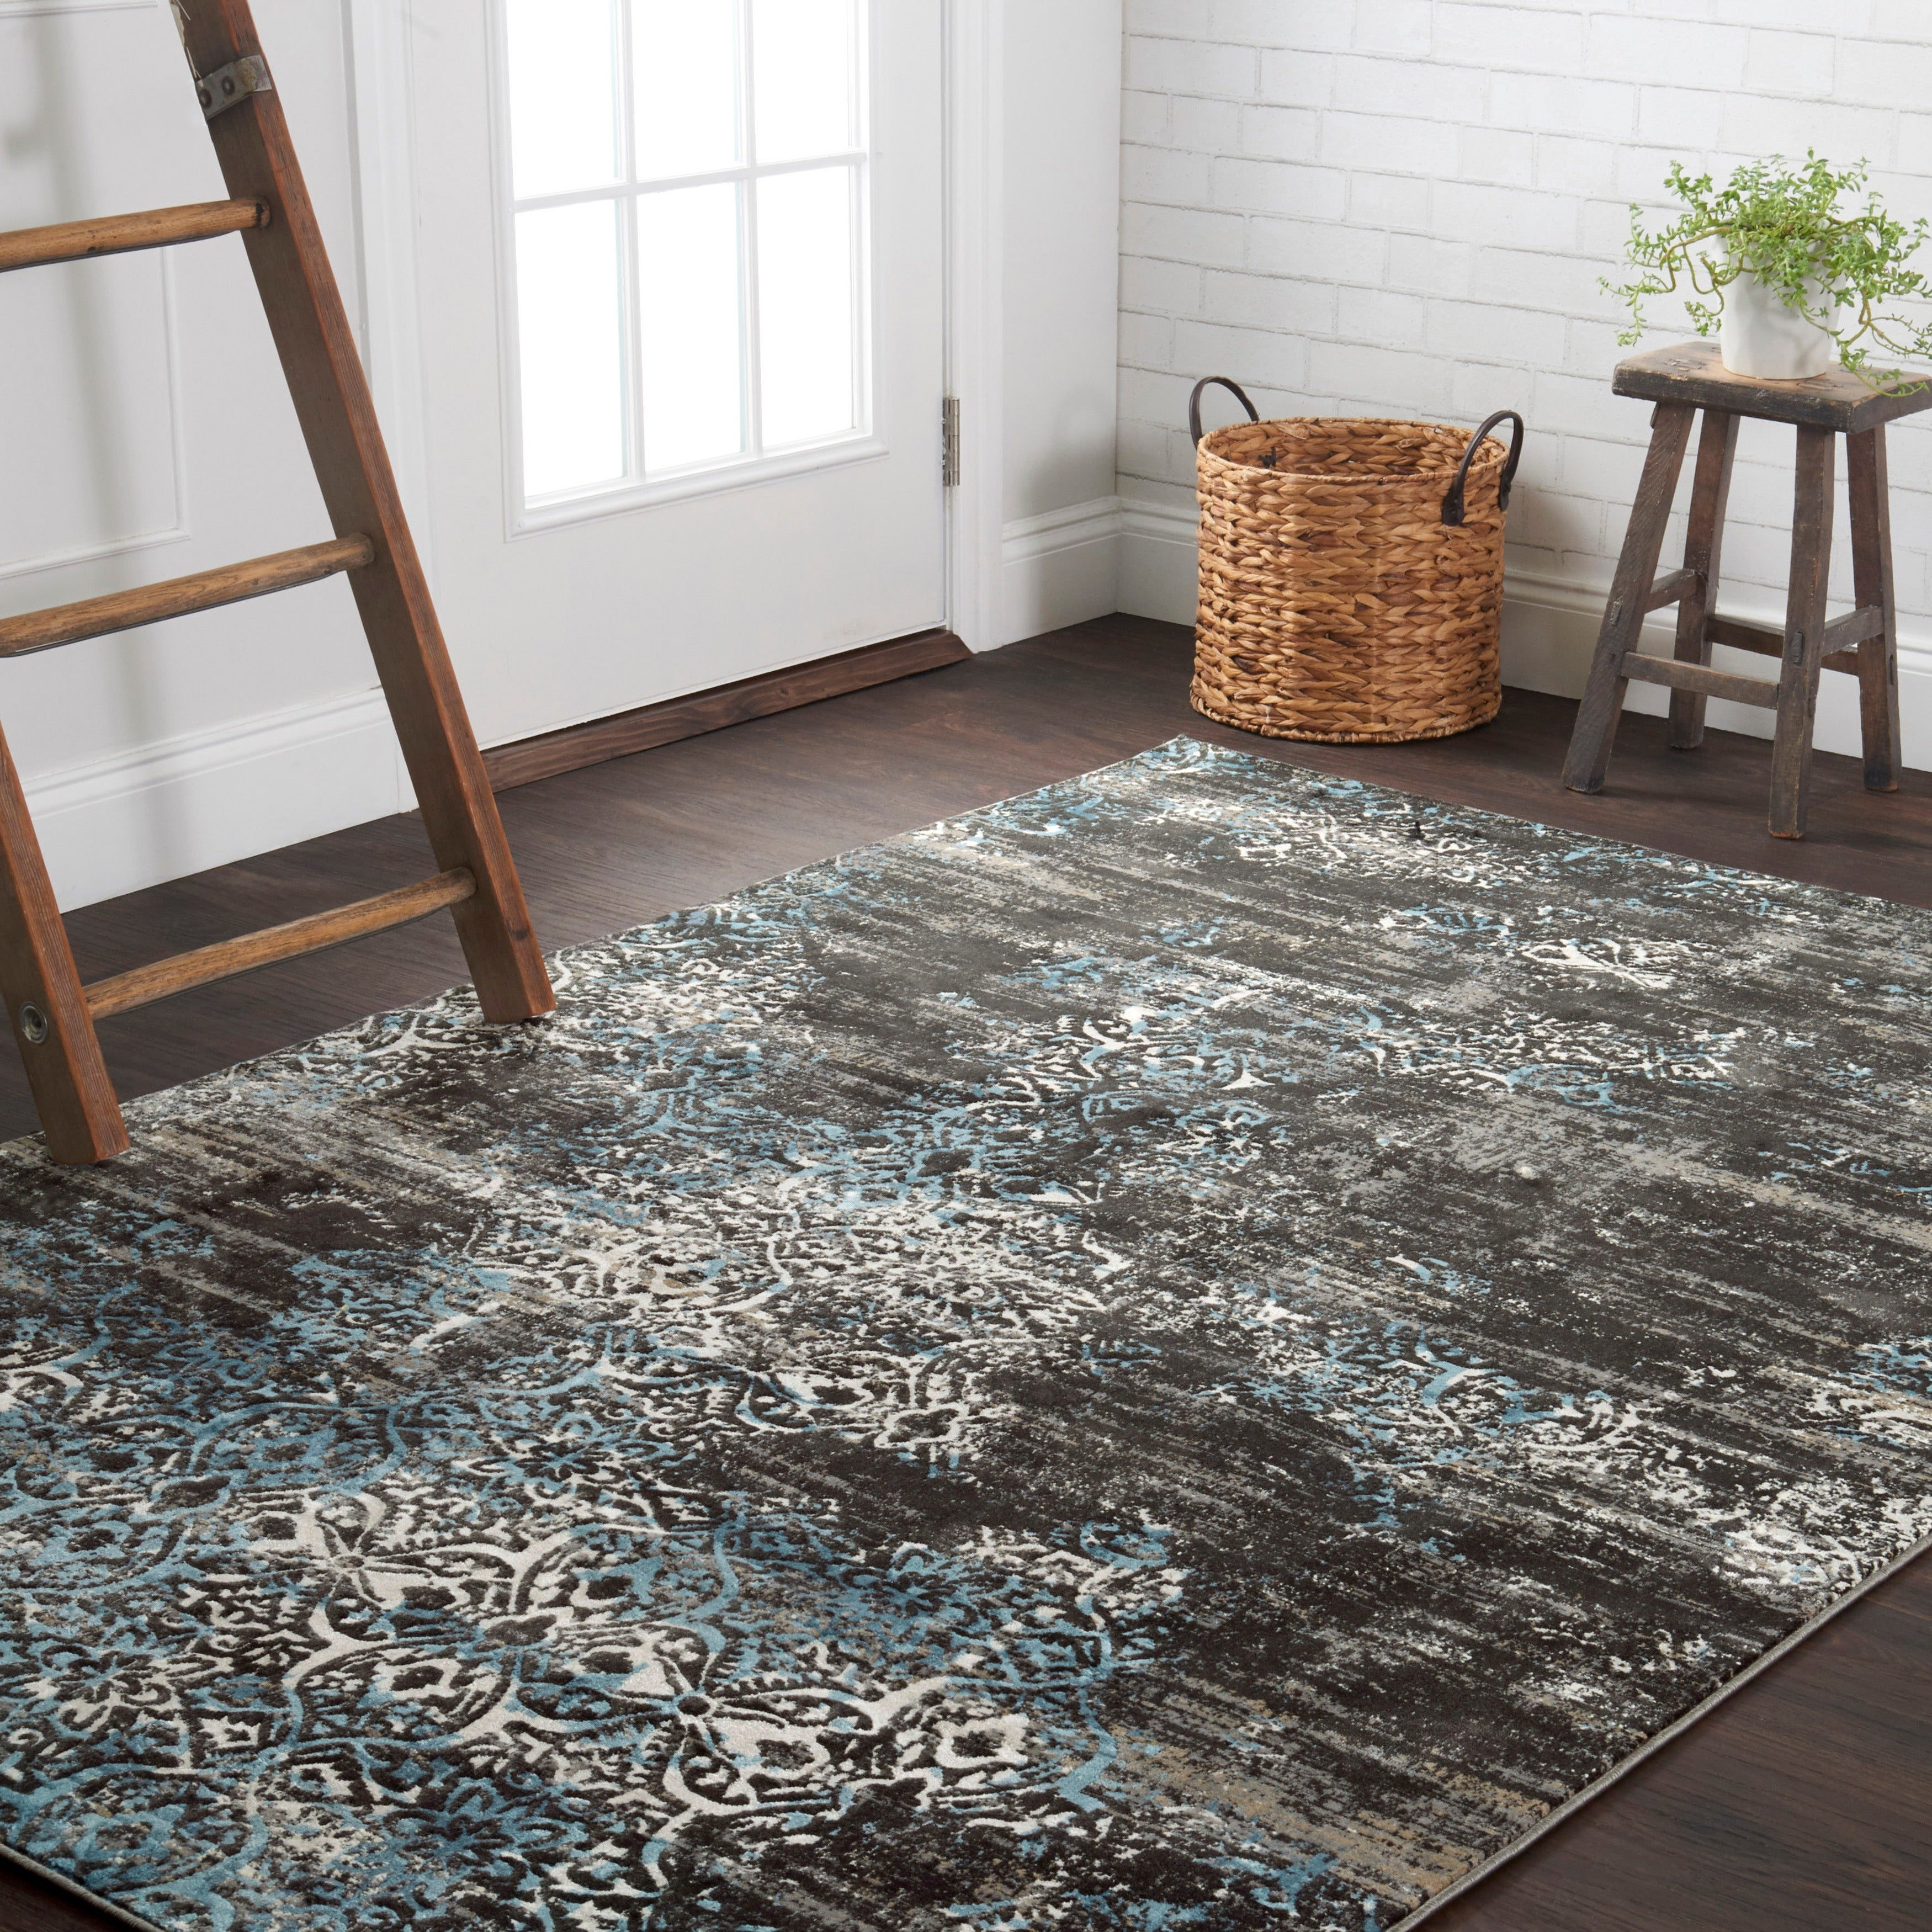 Distressed Antique Dark Grey/ Blue Vintage Inspired Rug - 12' x 15' (Charcoal/ Blue (12' x 15'))